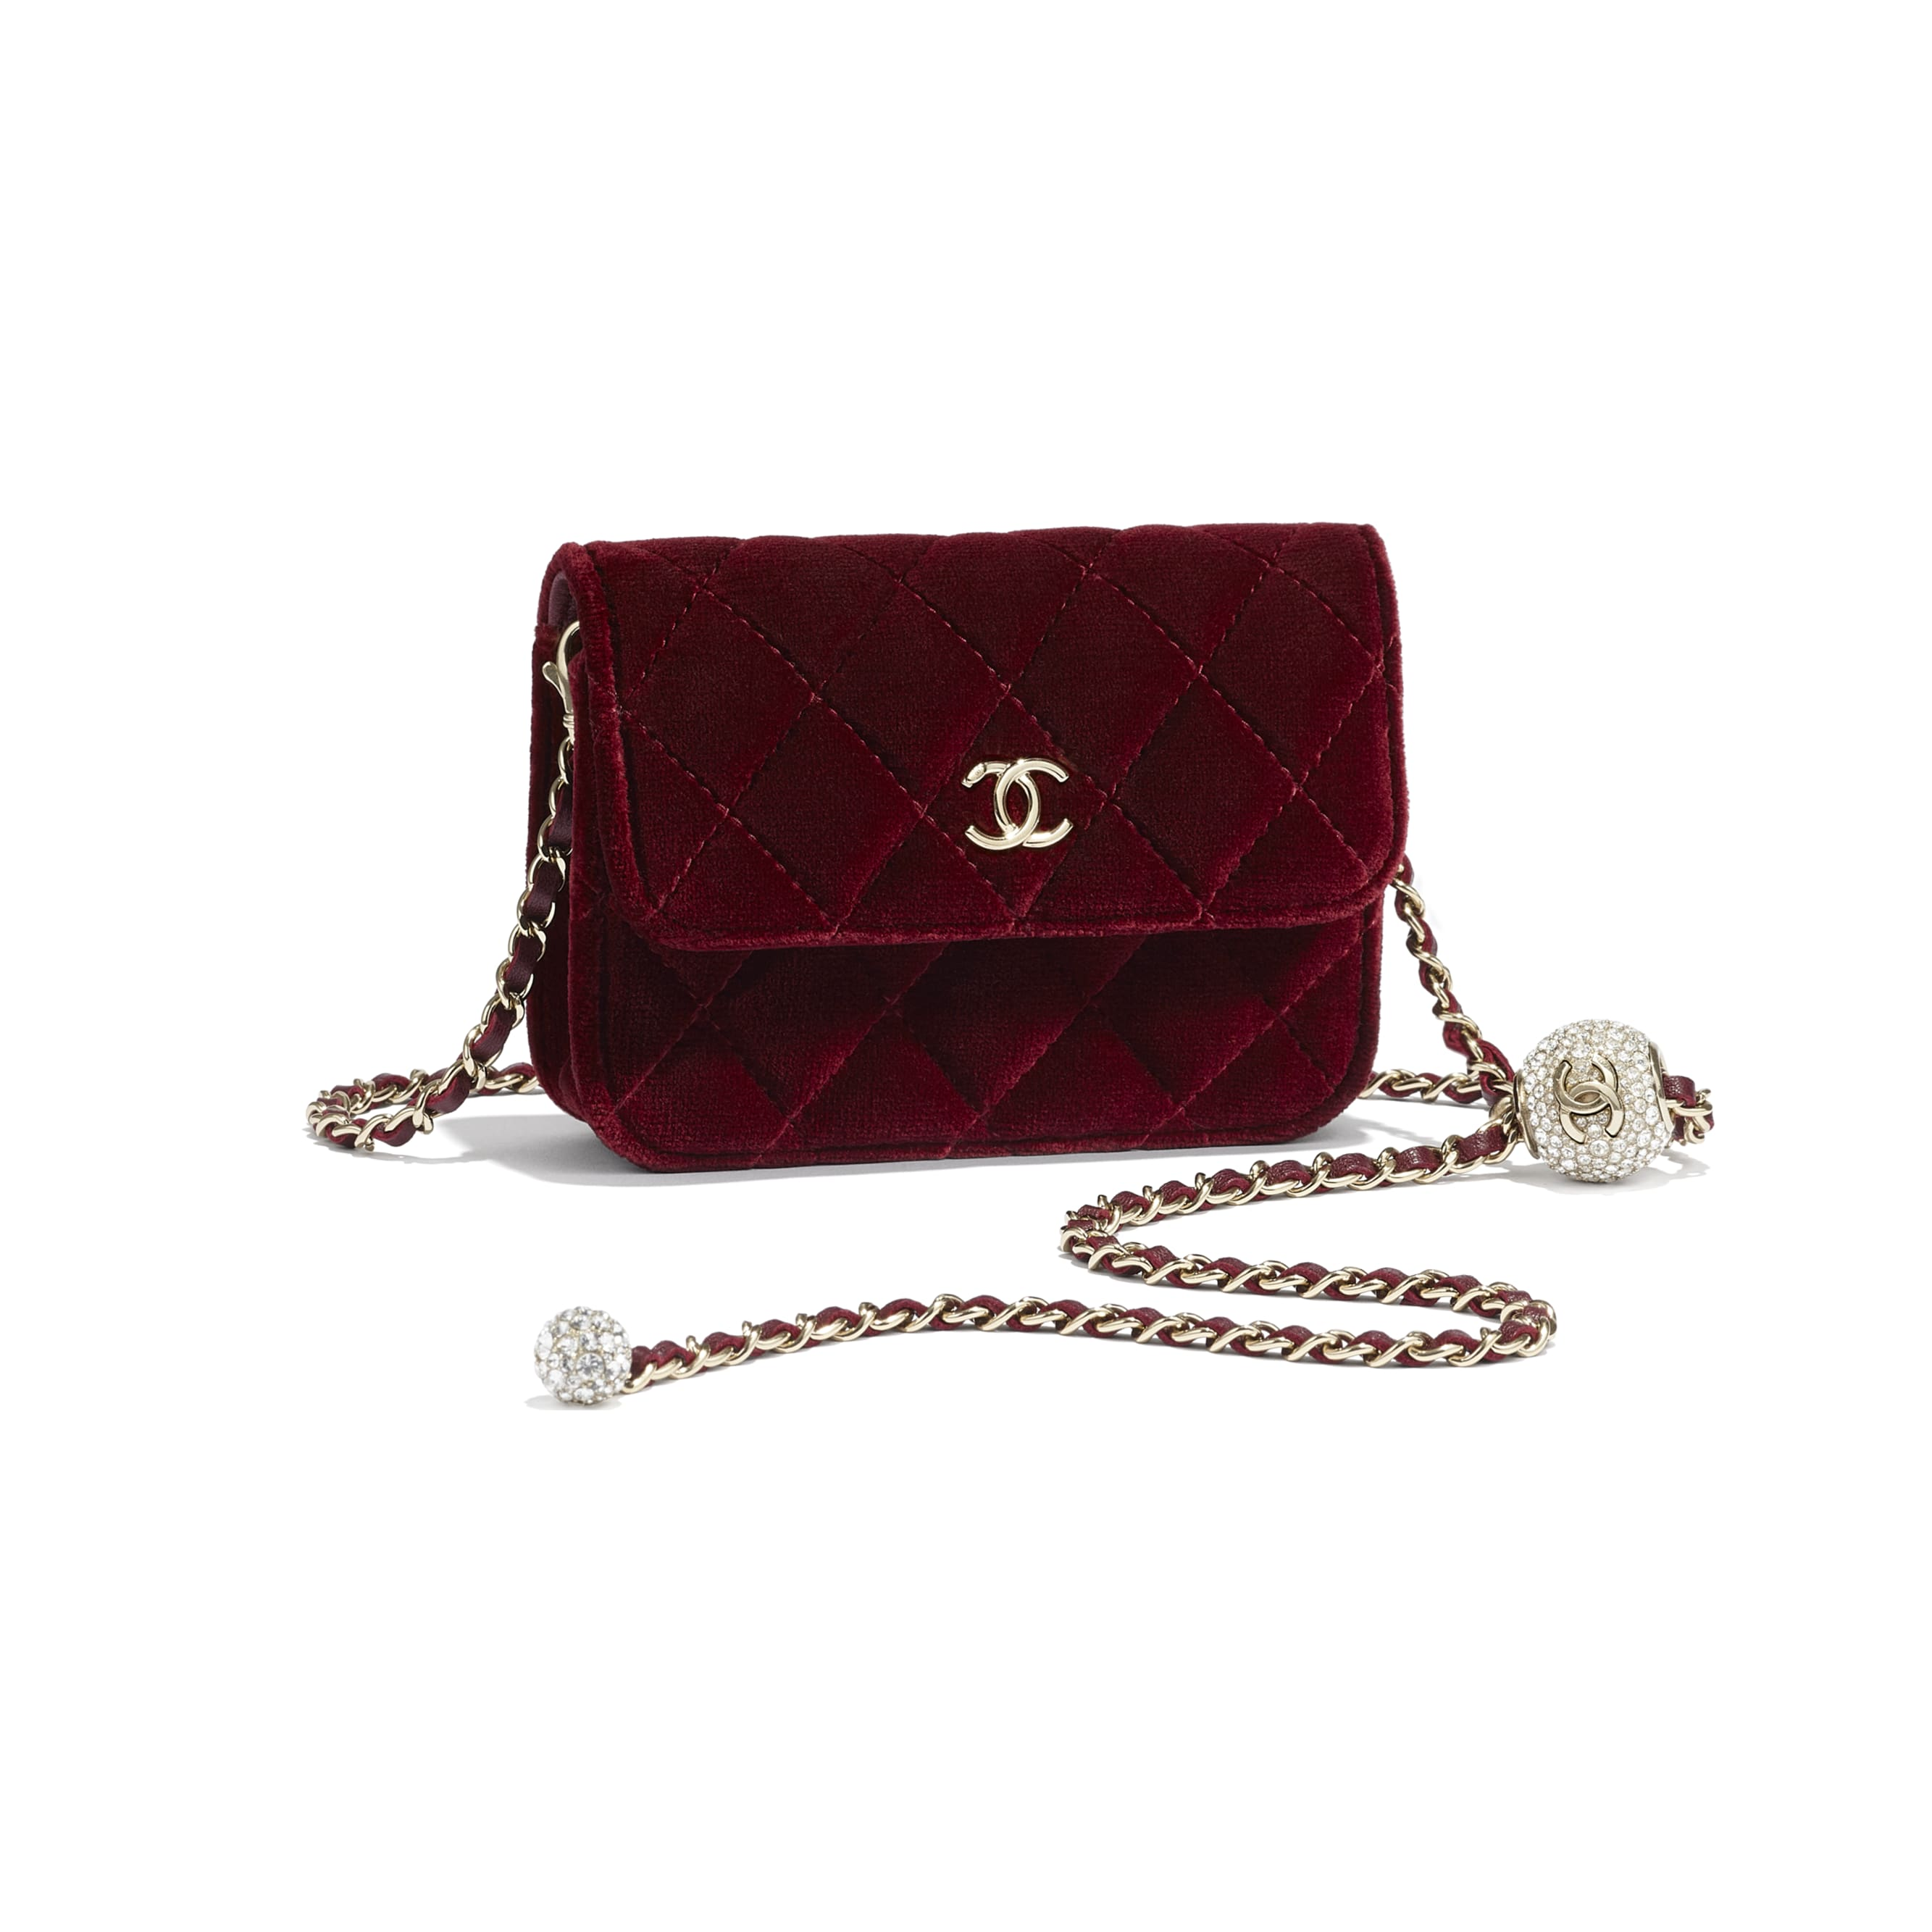 Clutch With Chain - Burgundy - Velvet, Diamanté & Silver-Tone Metal - CHANEL - Extra view - see standard sized version